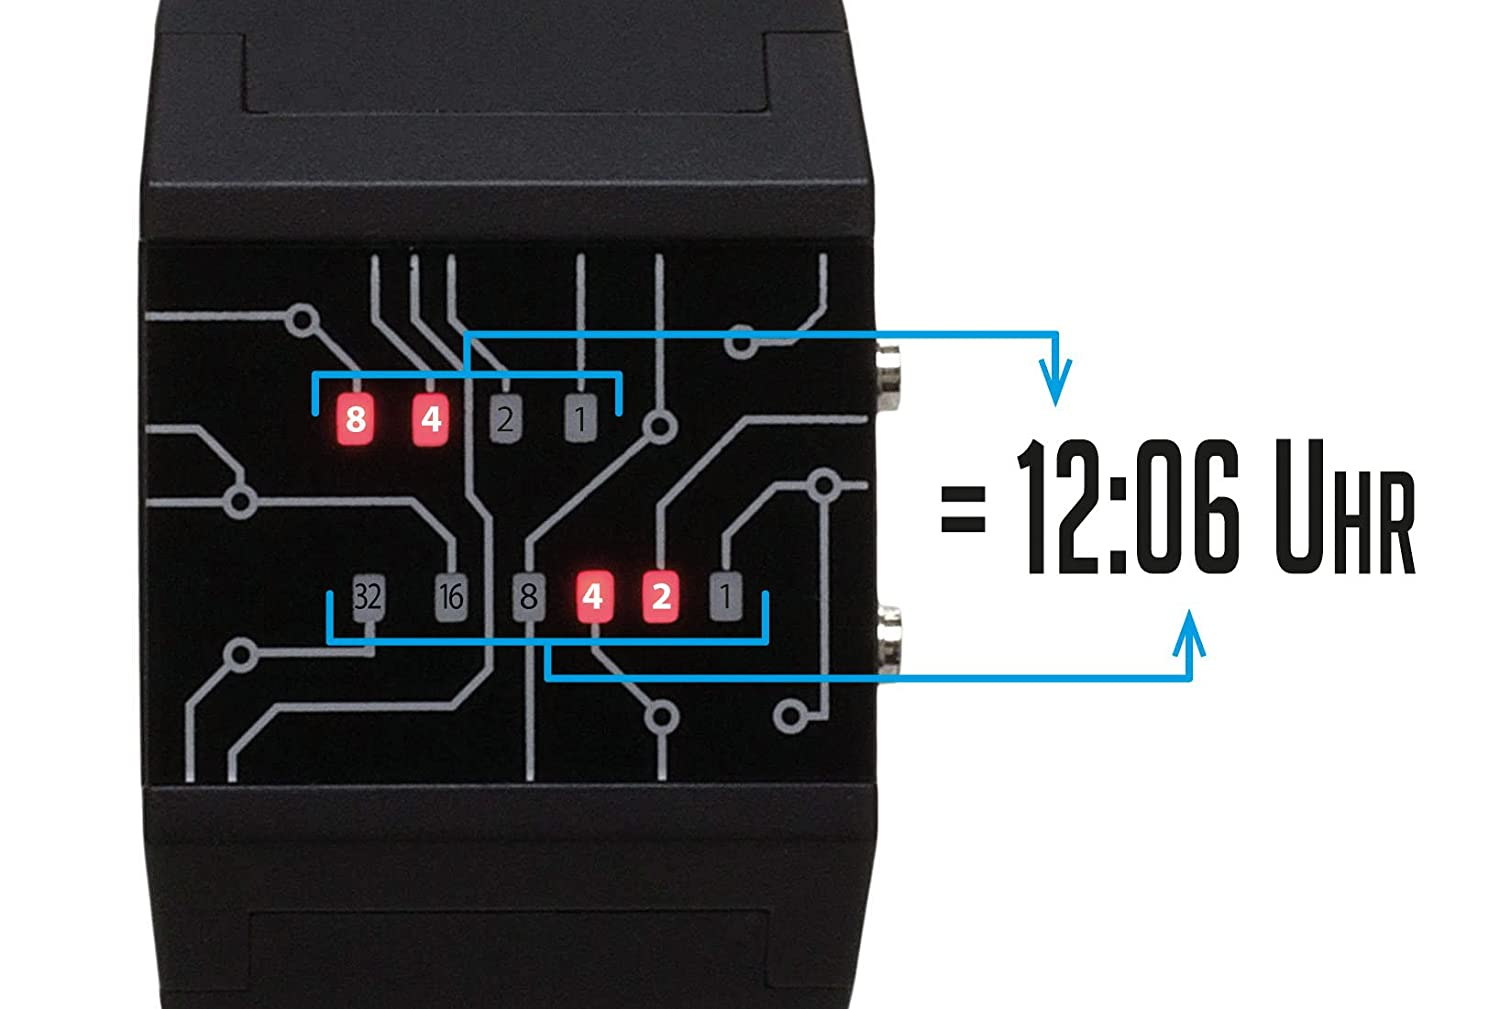 Getdigital Binary Wrist Watch For Professionals With Led Download Image 8 Bit Decimal To Converter Circuit Pc Android Lights A Black Digital Clock That Depicts The Time As Code Watches